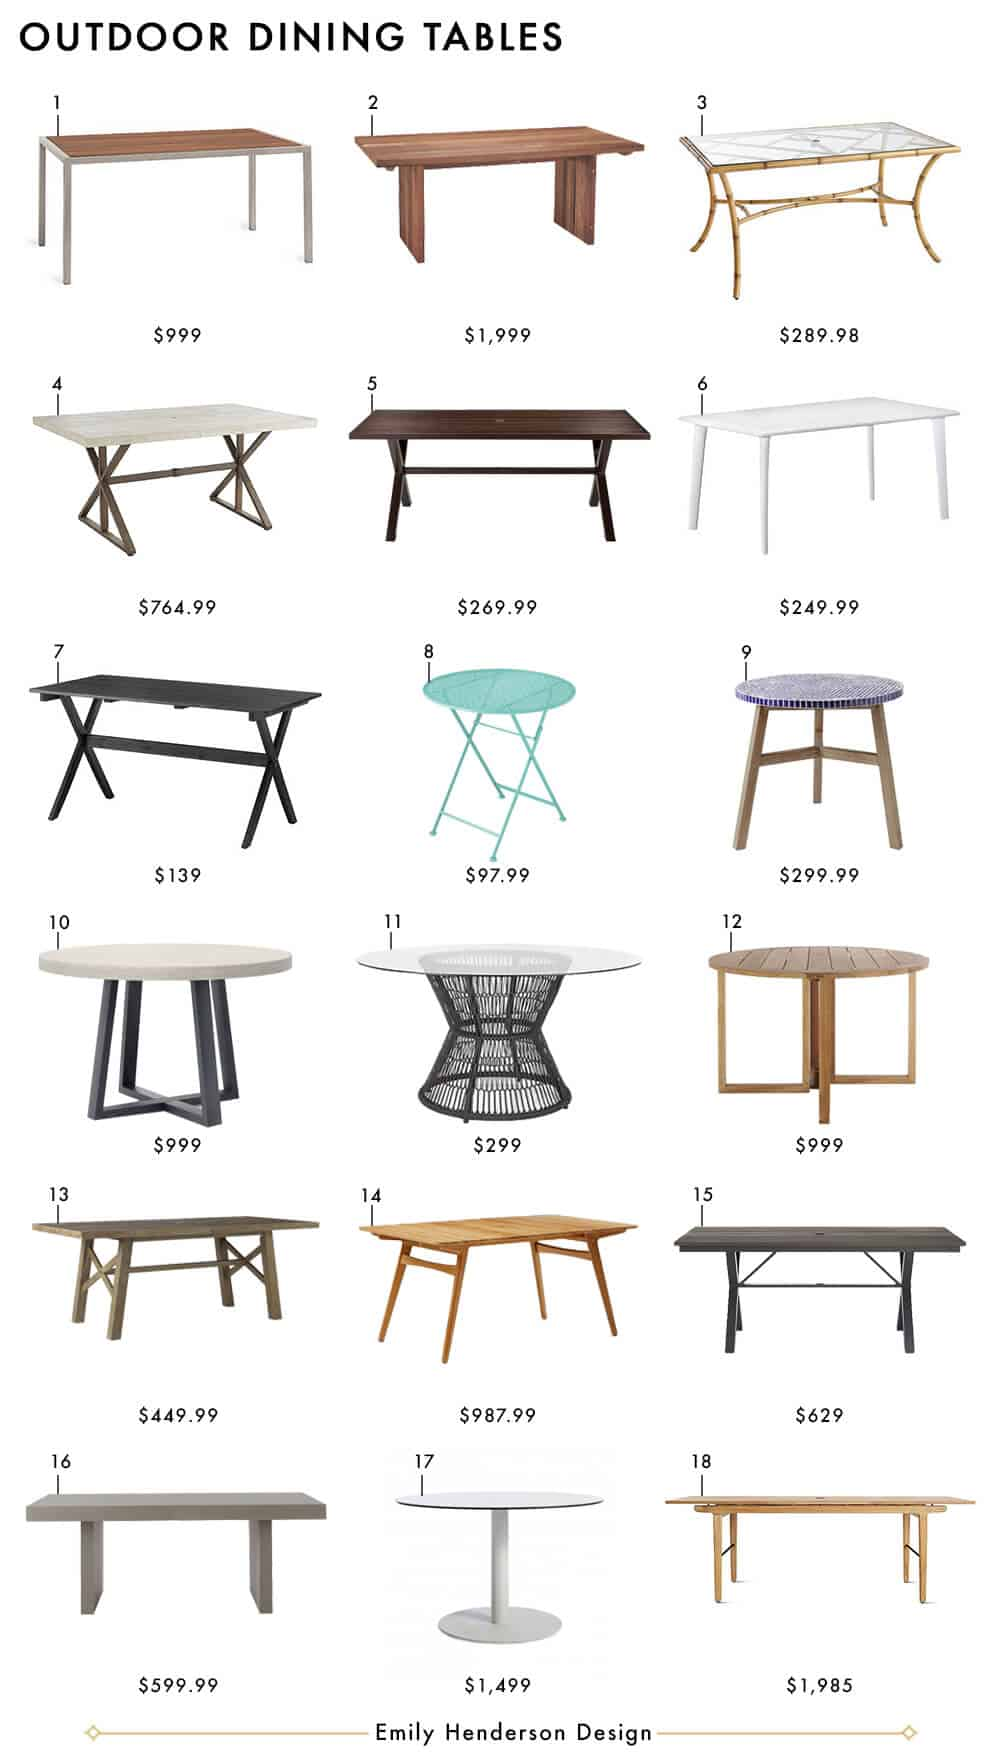 Outdoor Dining Tables Emily Henderson Design Patio Furniture Roundup